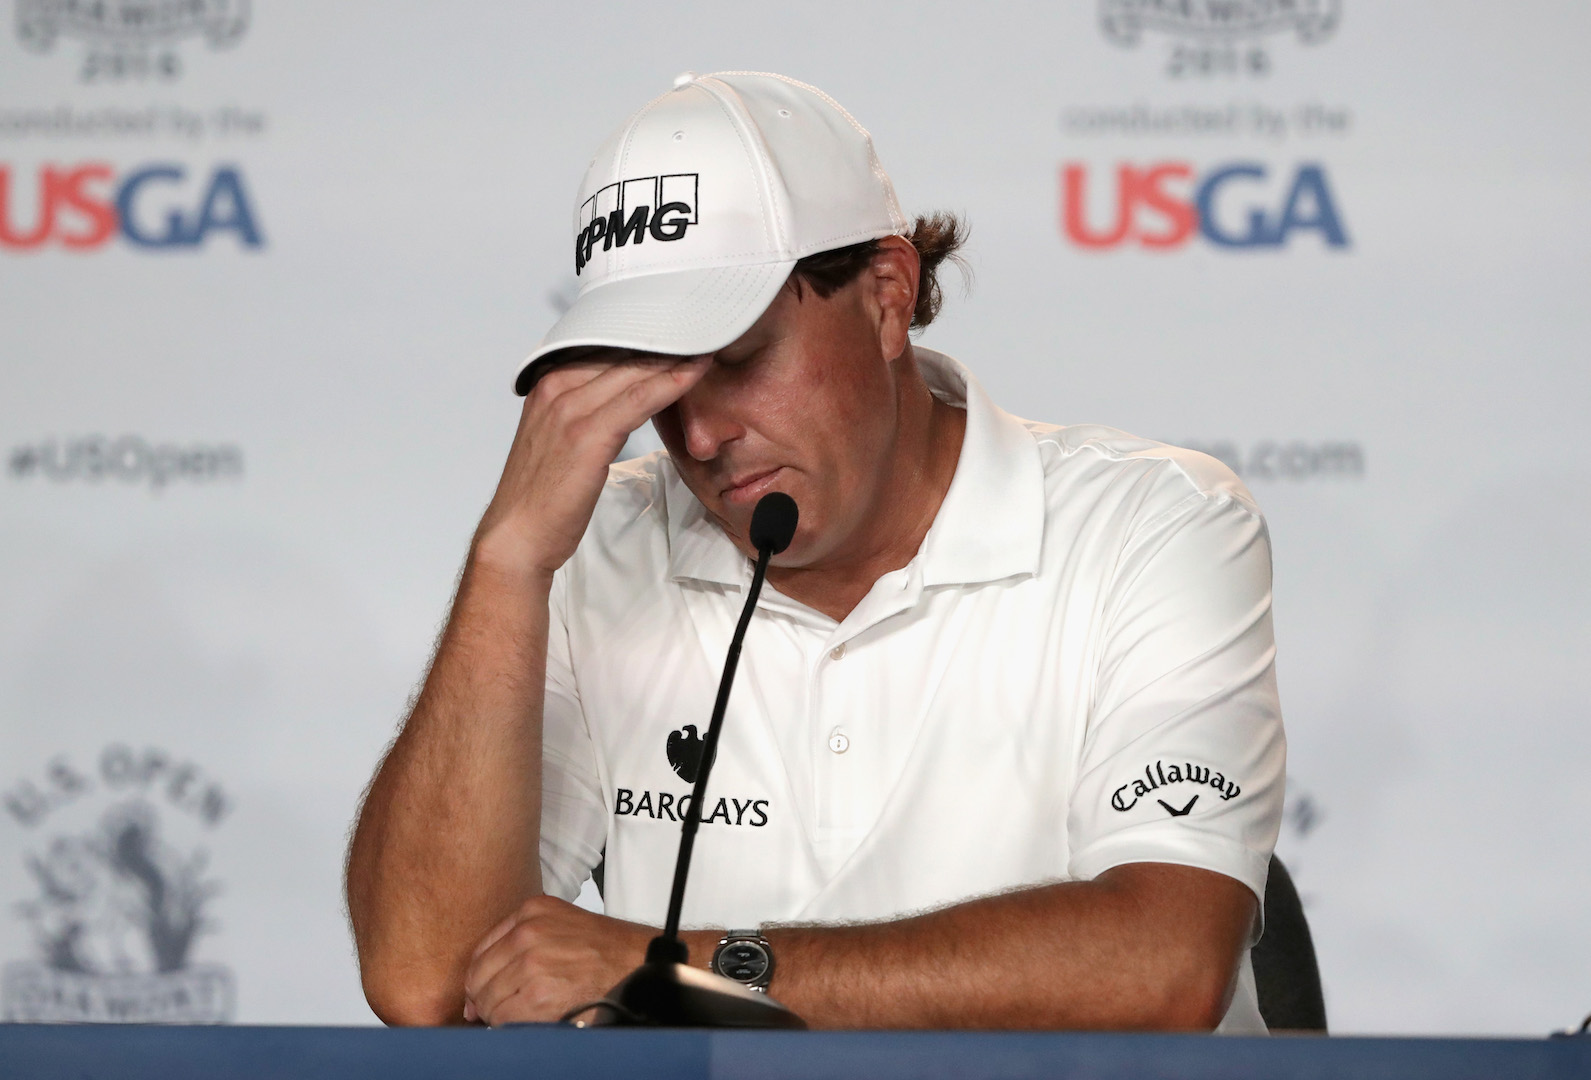 Phil Mickelson wants to go over the edge!